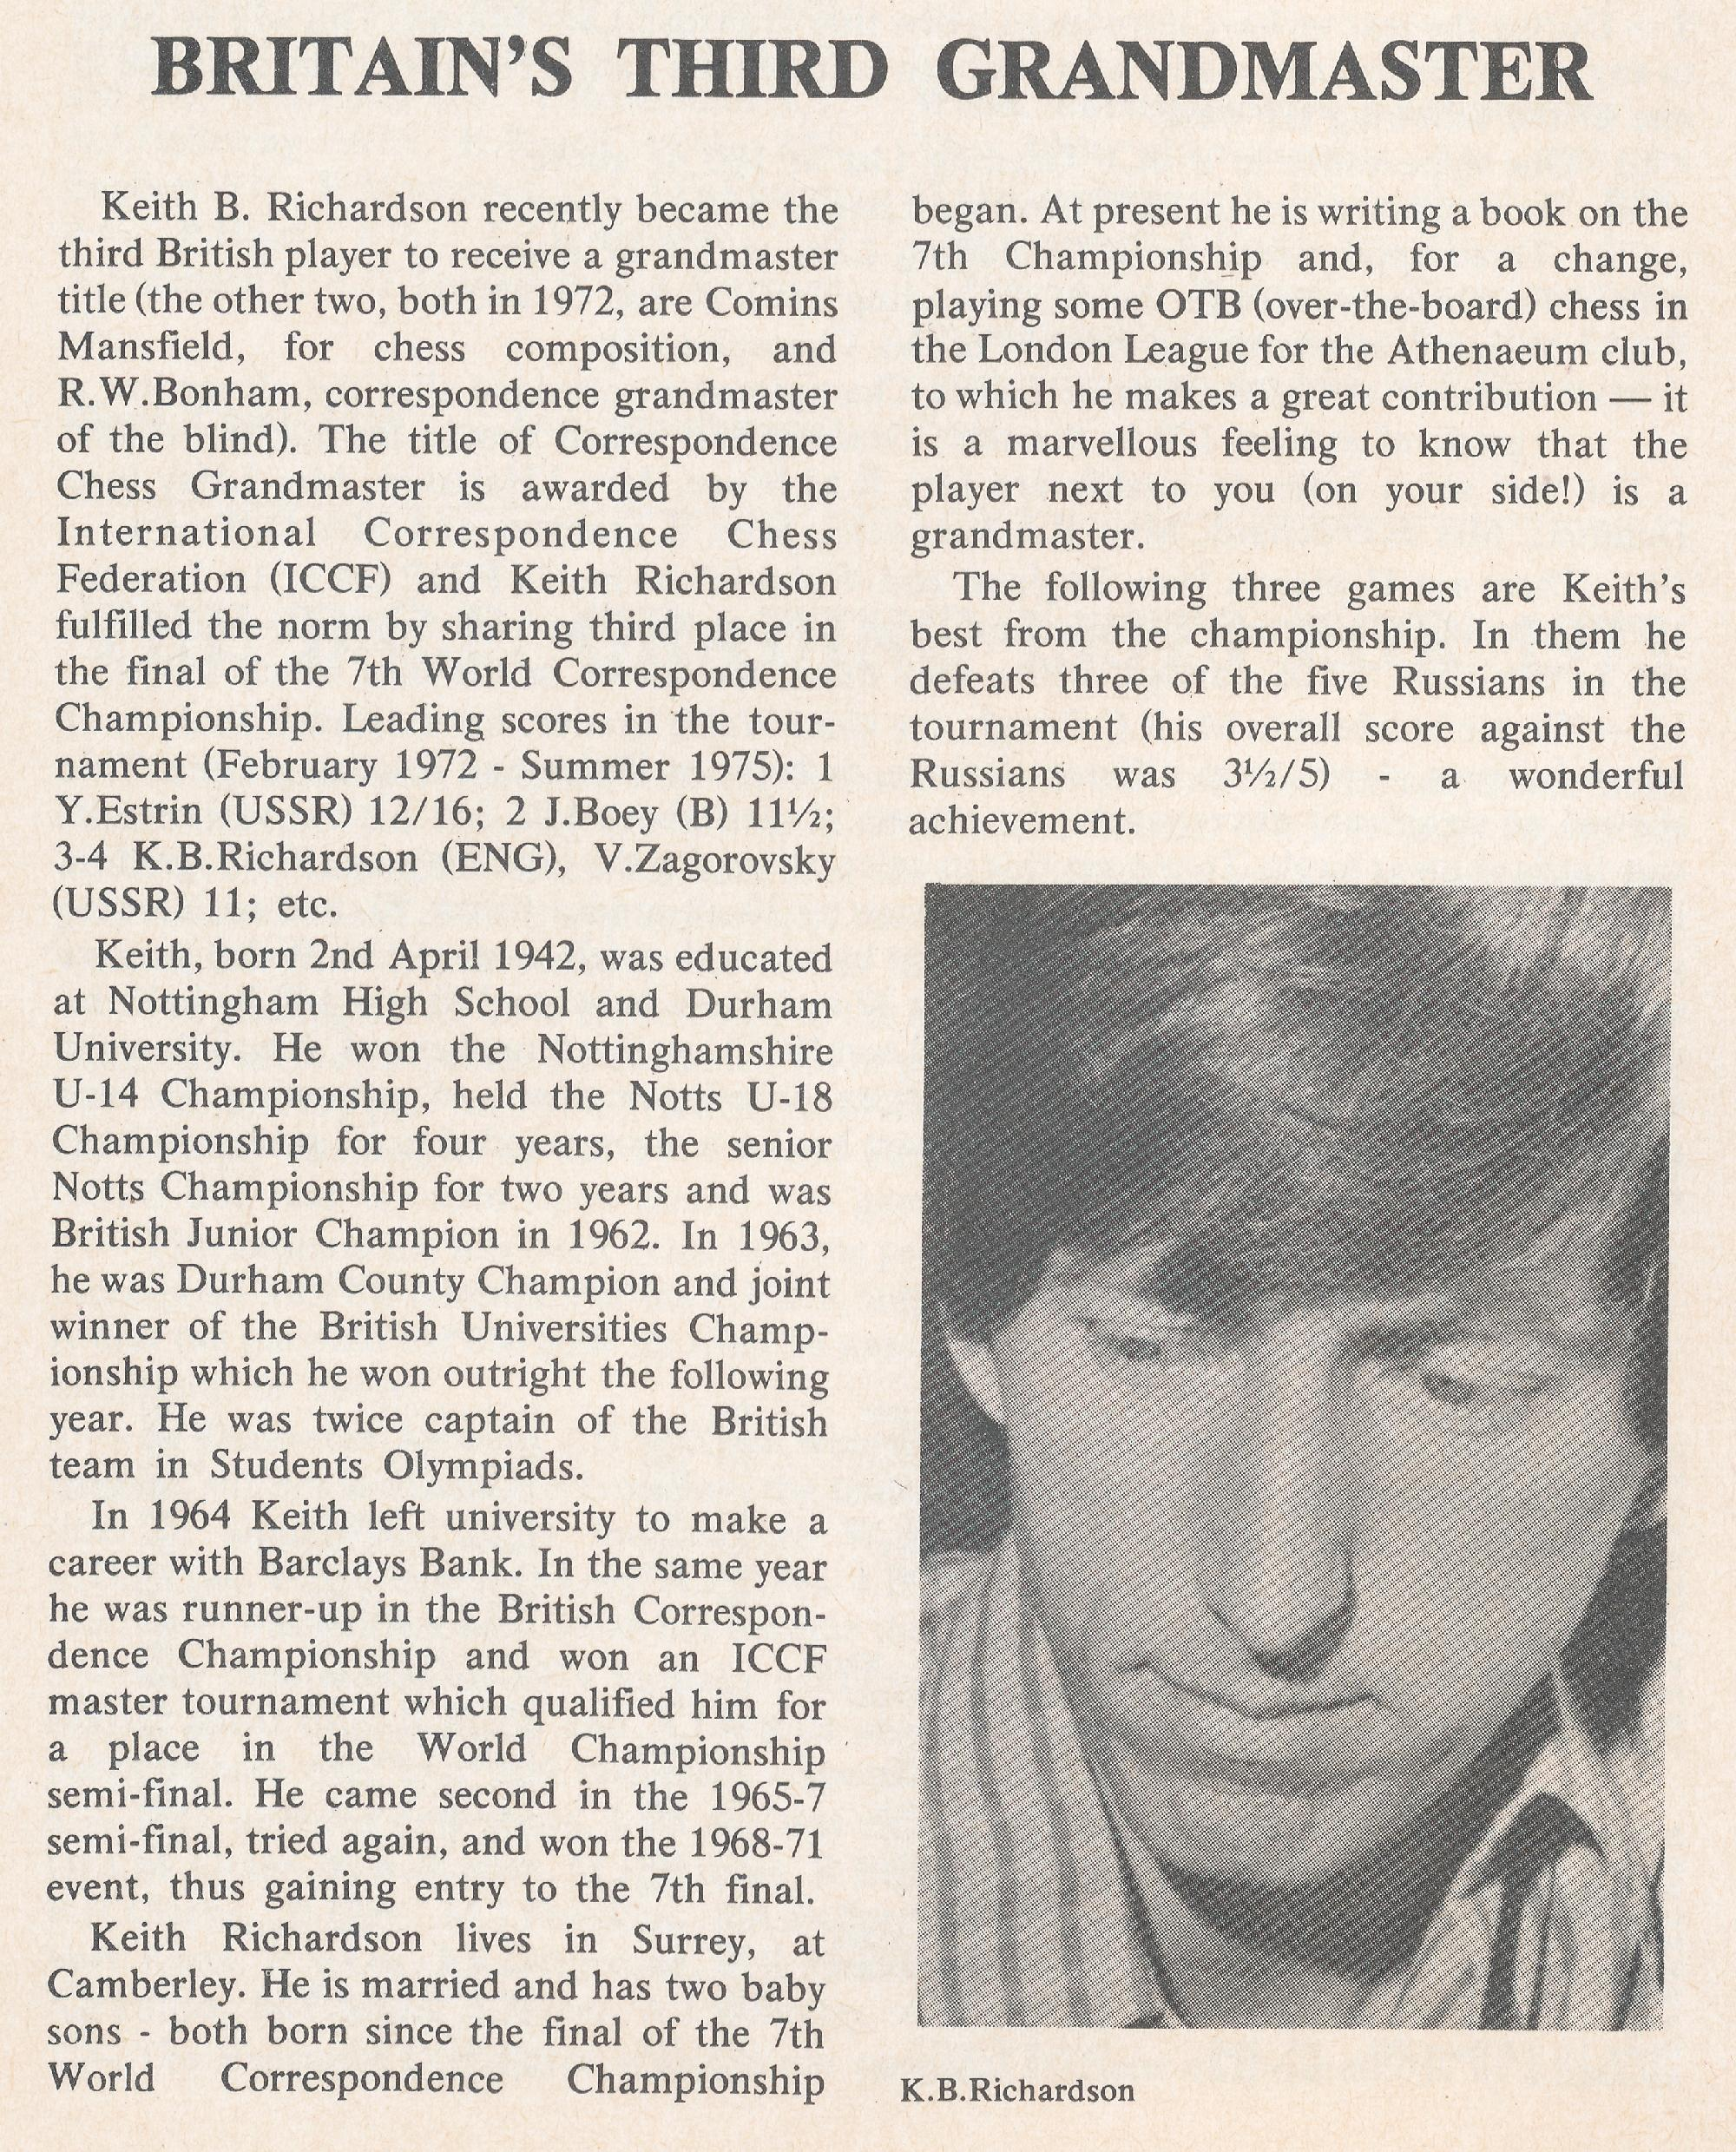 British Chess Magazine, Volume LIXIV (95, 1975), Number 12 (December), page 526